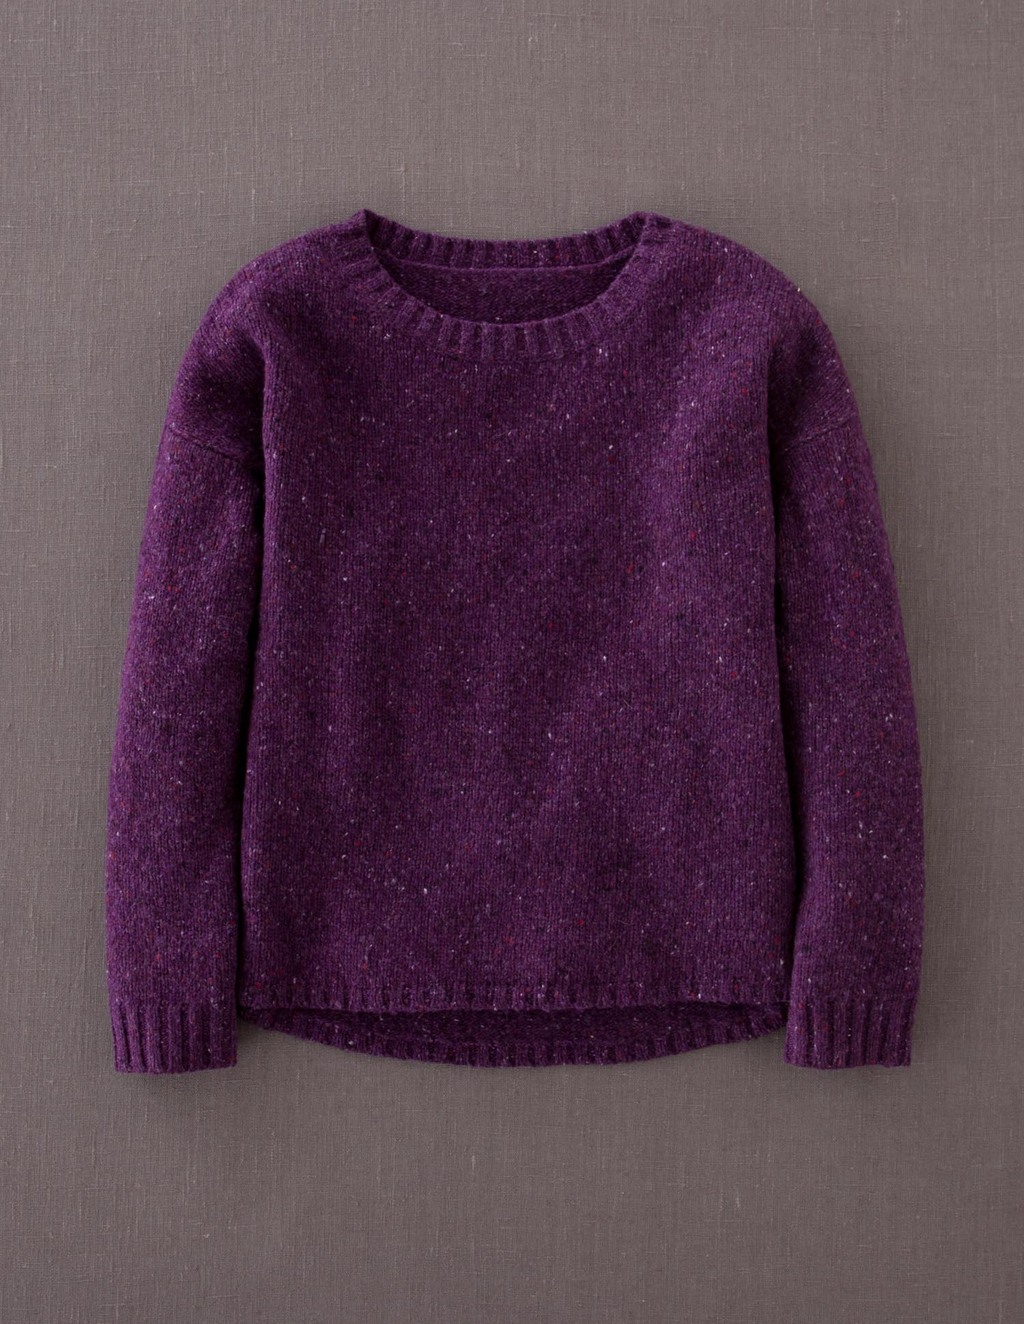 Skye Jumper - pattern: plain; style: standard; predominant colour: aubergine; occasions: casual; length: standard; fibres: wool - mix; fit: standard fit; neckline: crew; sleeve length: long sleeve; sleeve style: standard; texture group: knits/crochet; pattern type: knitted - fine stitch; season: a/w 2013